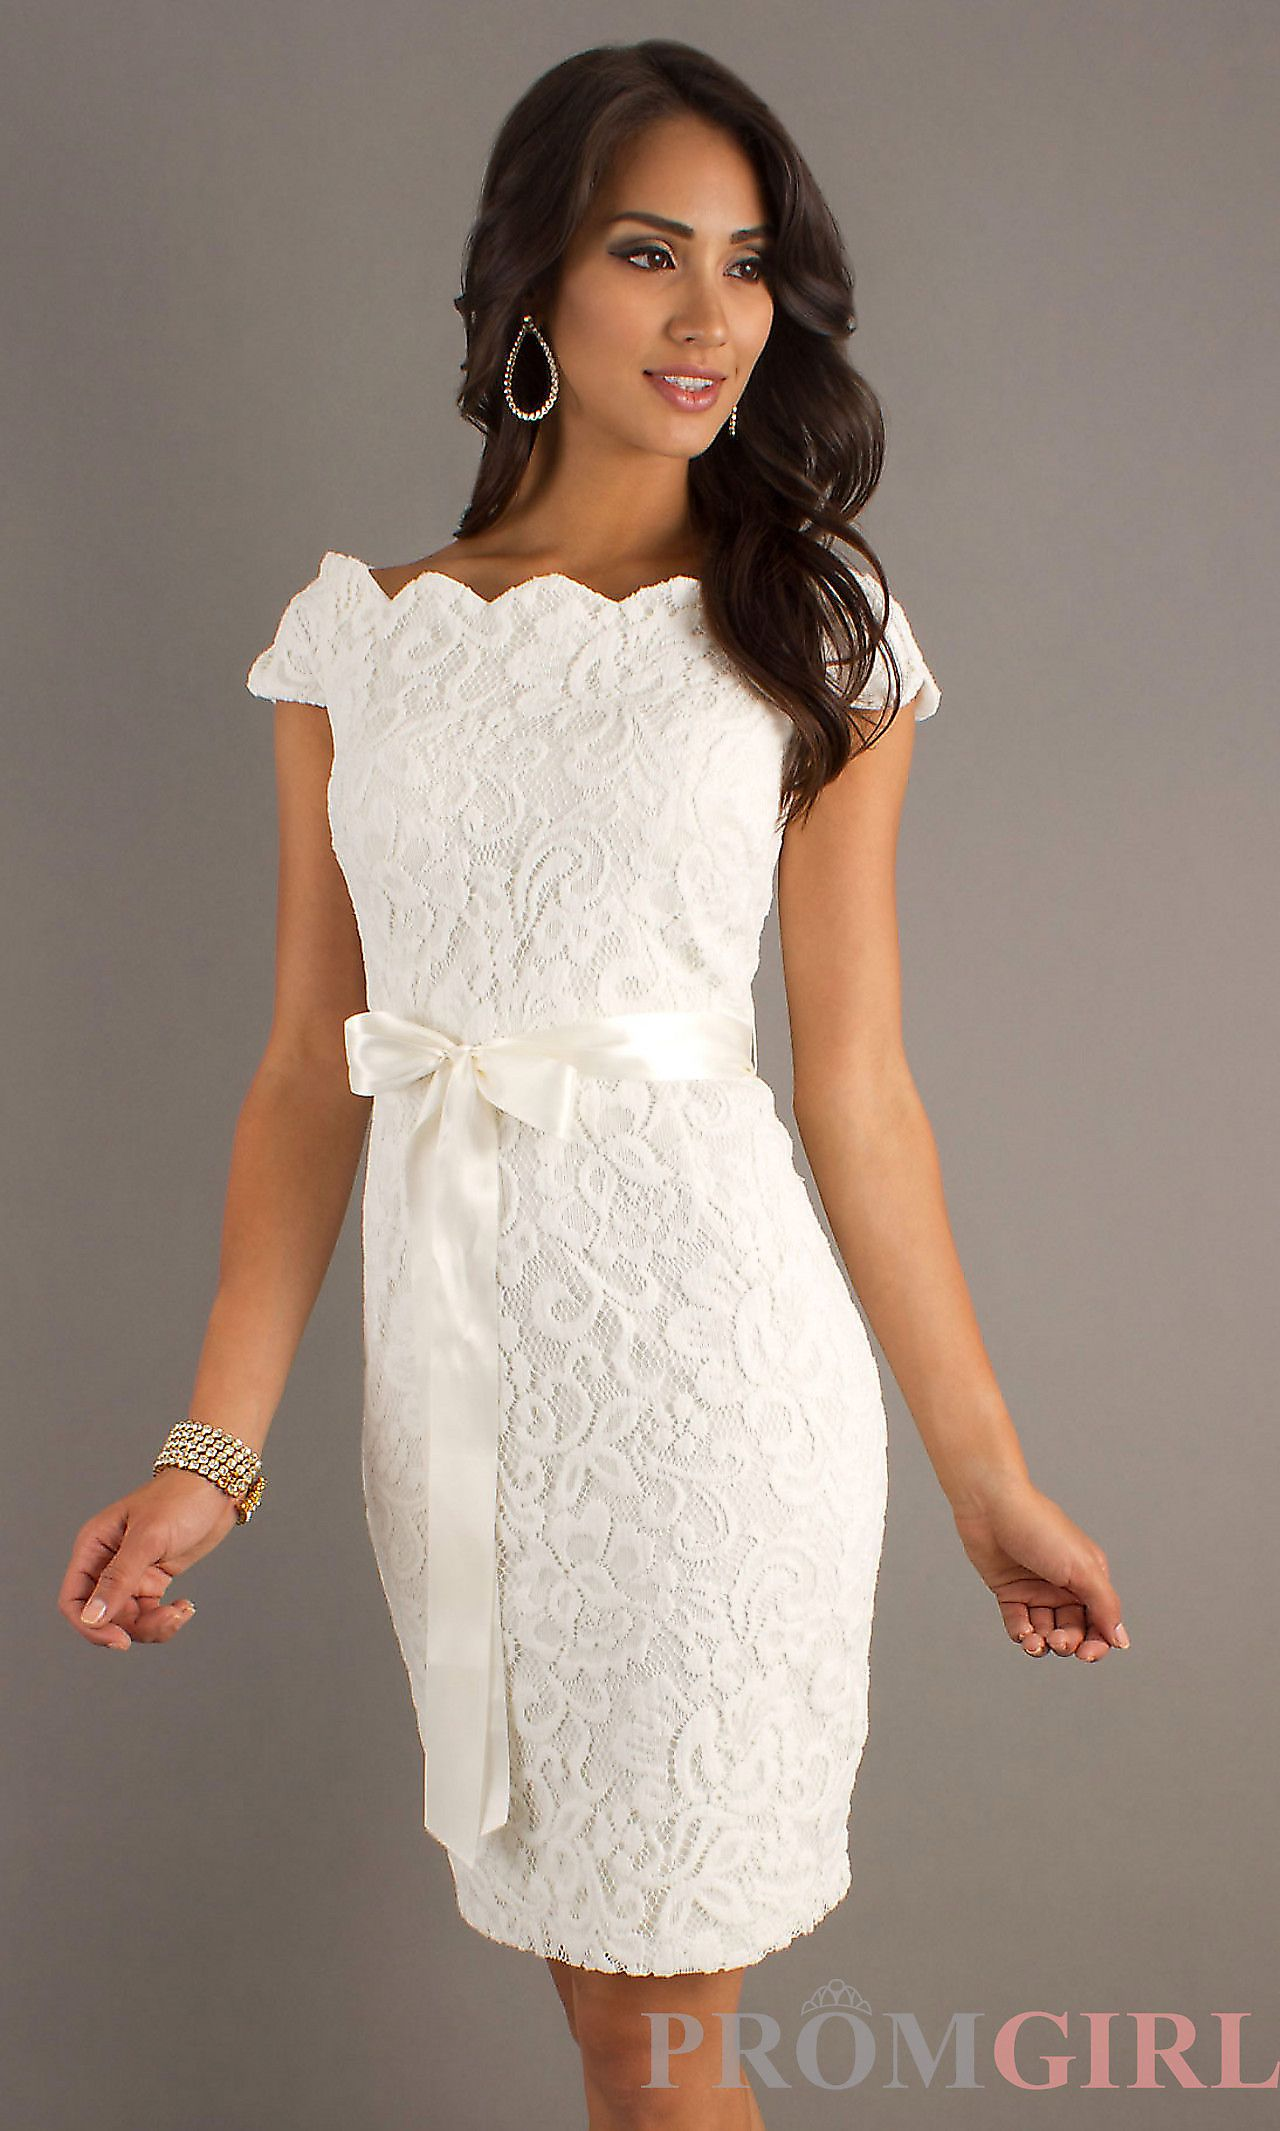 Medium Crop Of White Bridal Shower Dress